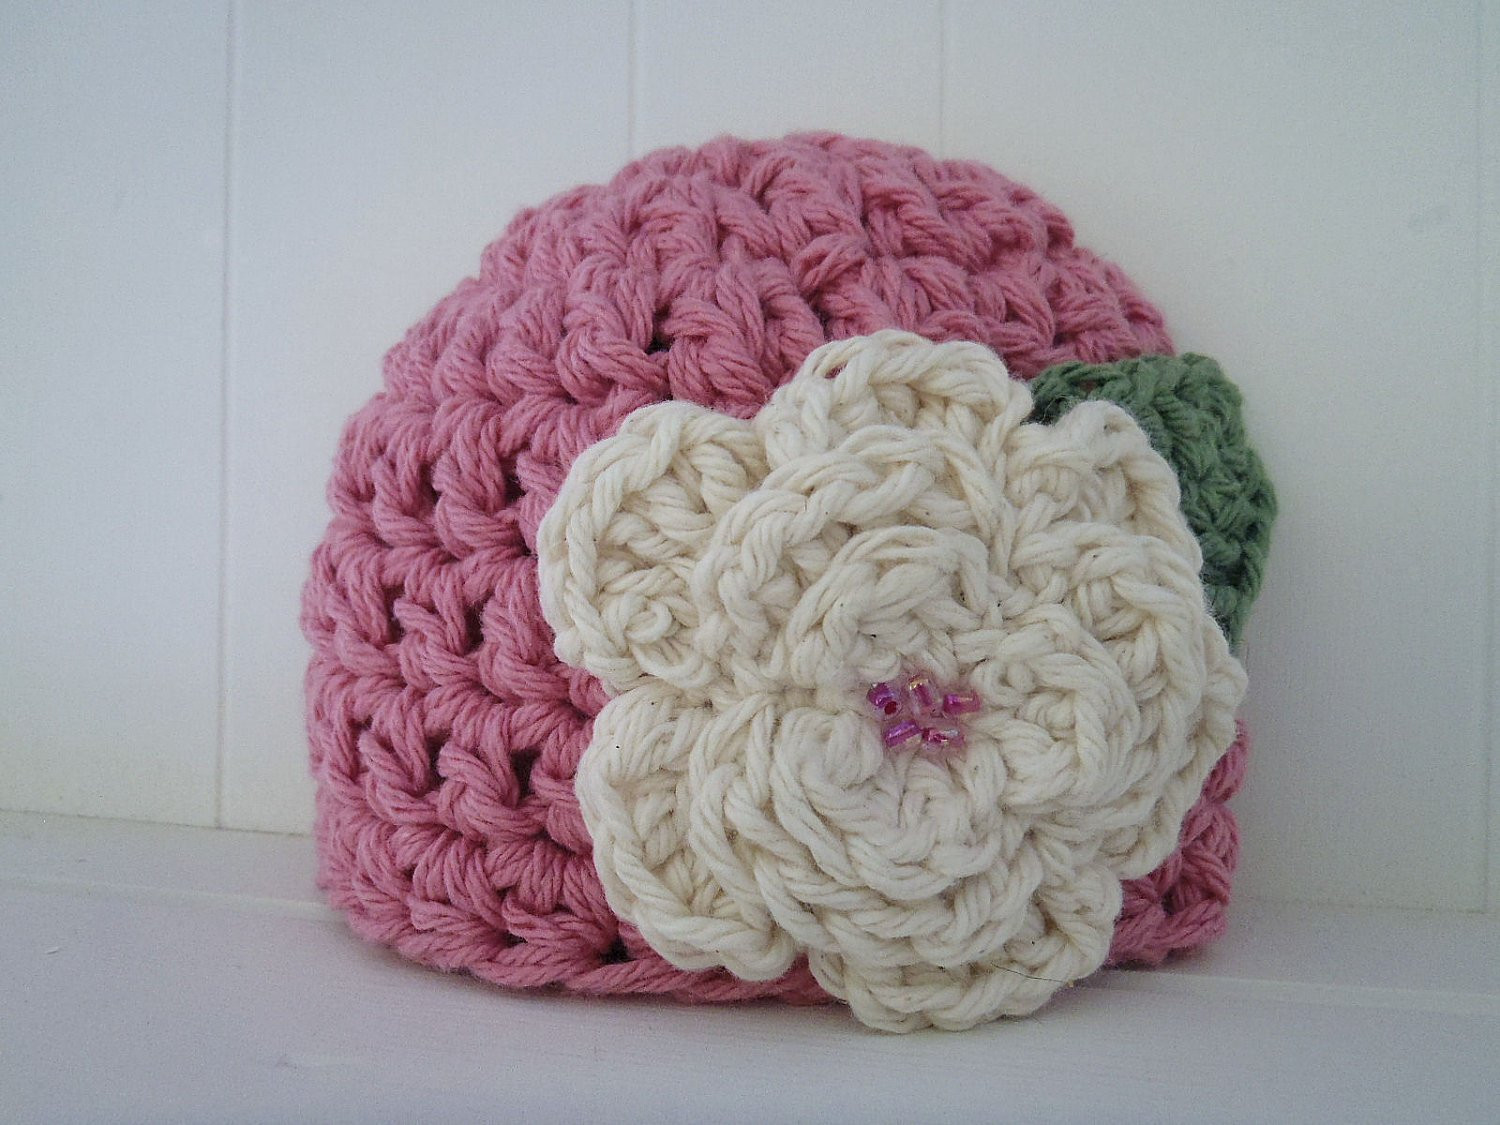 Fresh Crochet Pattern Chunky Basic Beanie Hat Newborn to Adult Chunky Crochet Beanie Pattern Of Fresh Crochet Hat Pattern Chunky Crochet Hat Winter Bun Hat Beanie Chunky Crochet Beanie Pattern